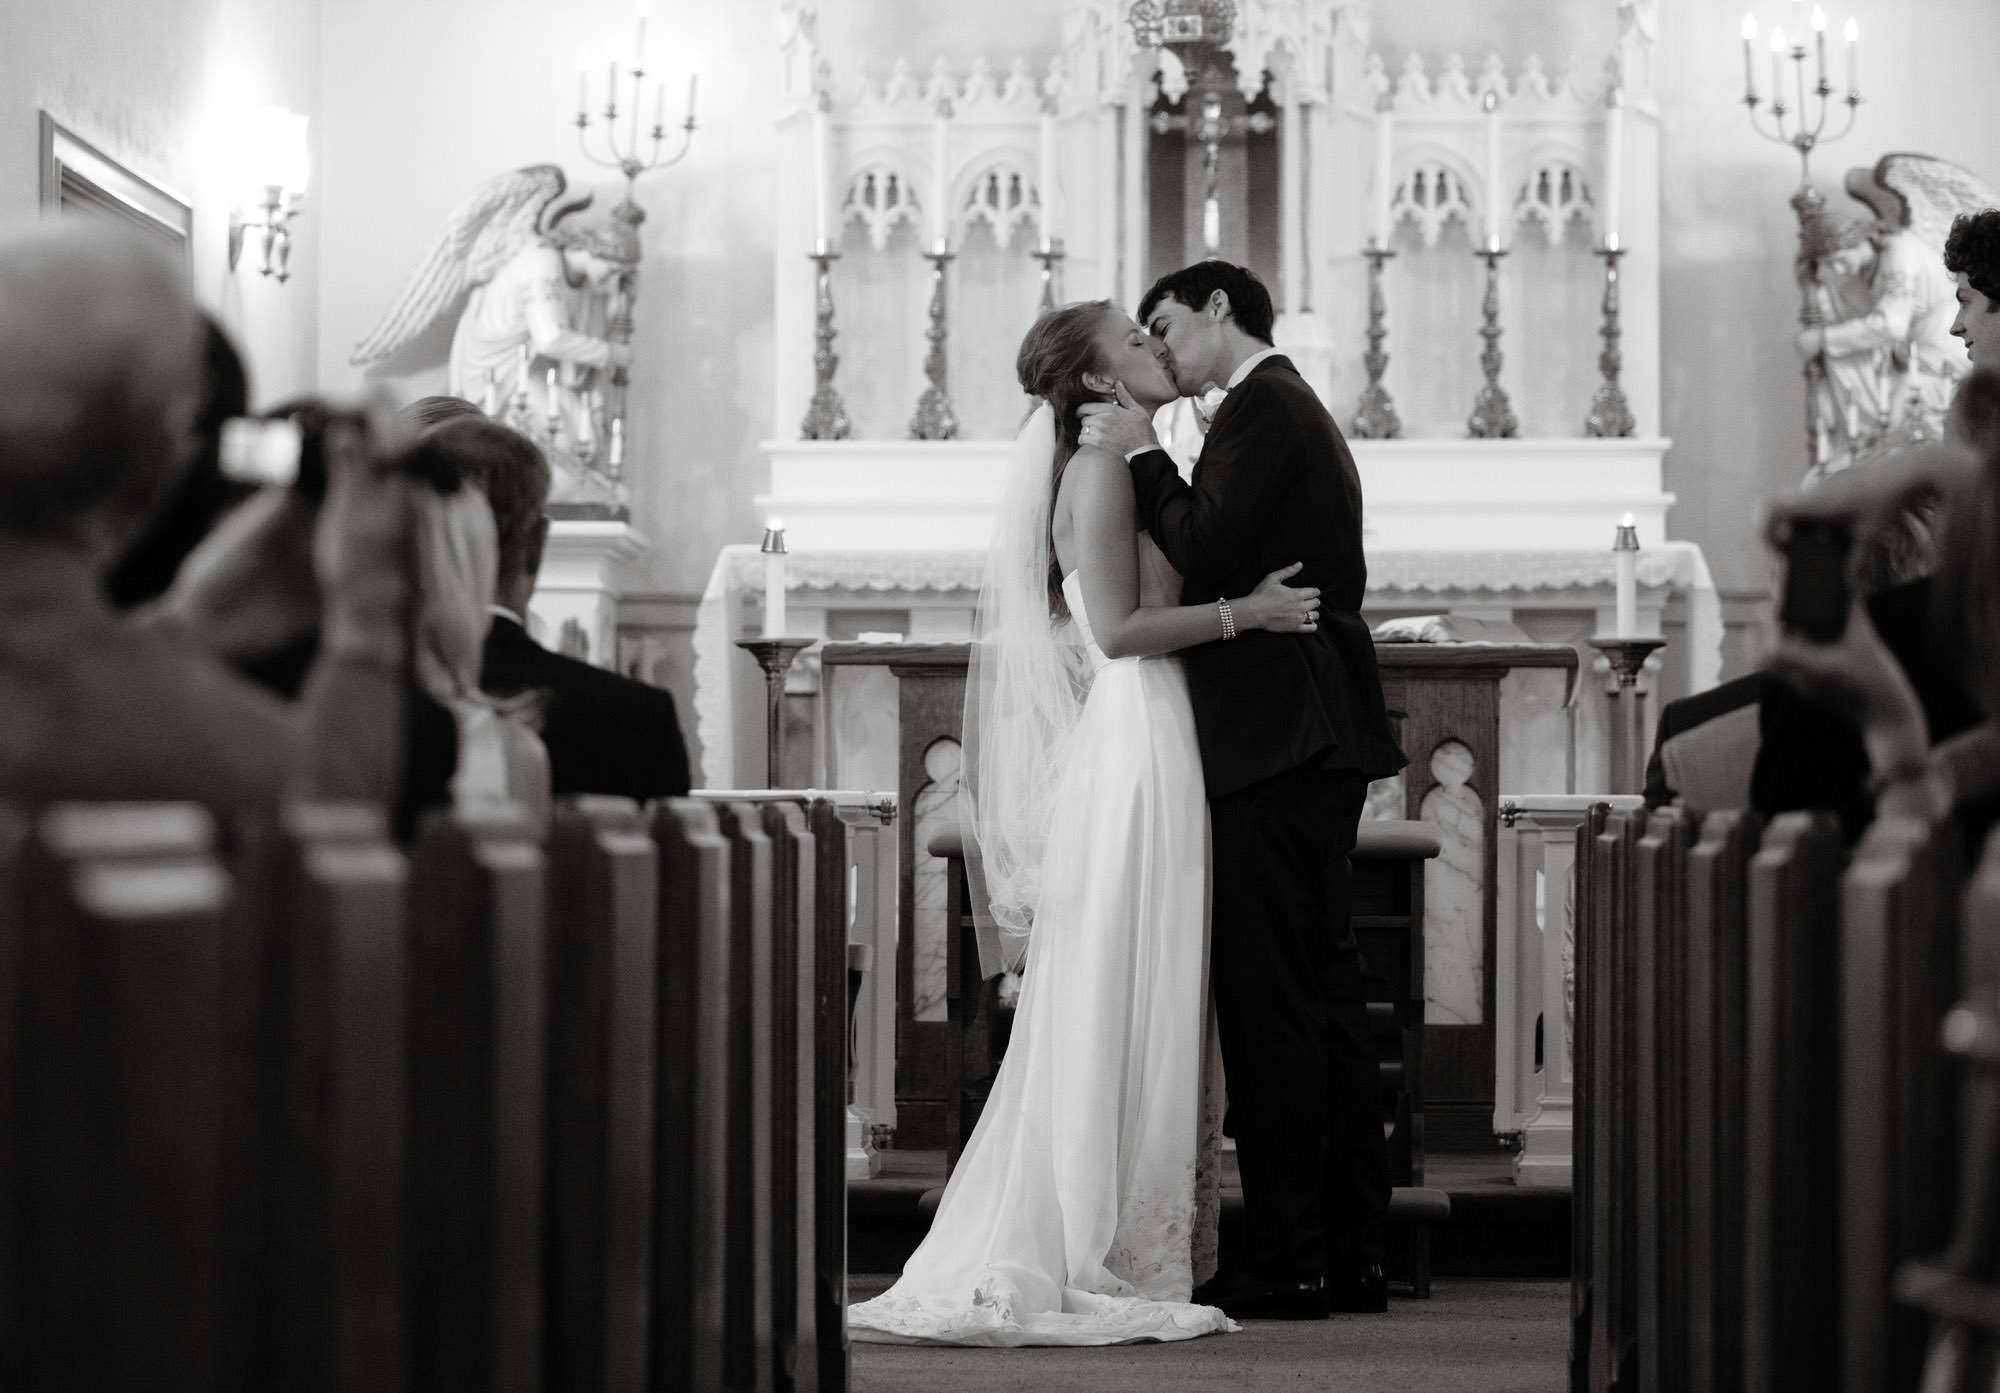 The bride and groom share their first kiss at St. Mary's Catholic Church in Rockville, MD.